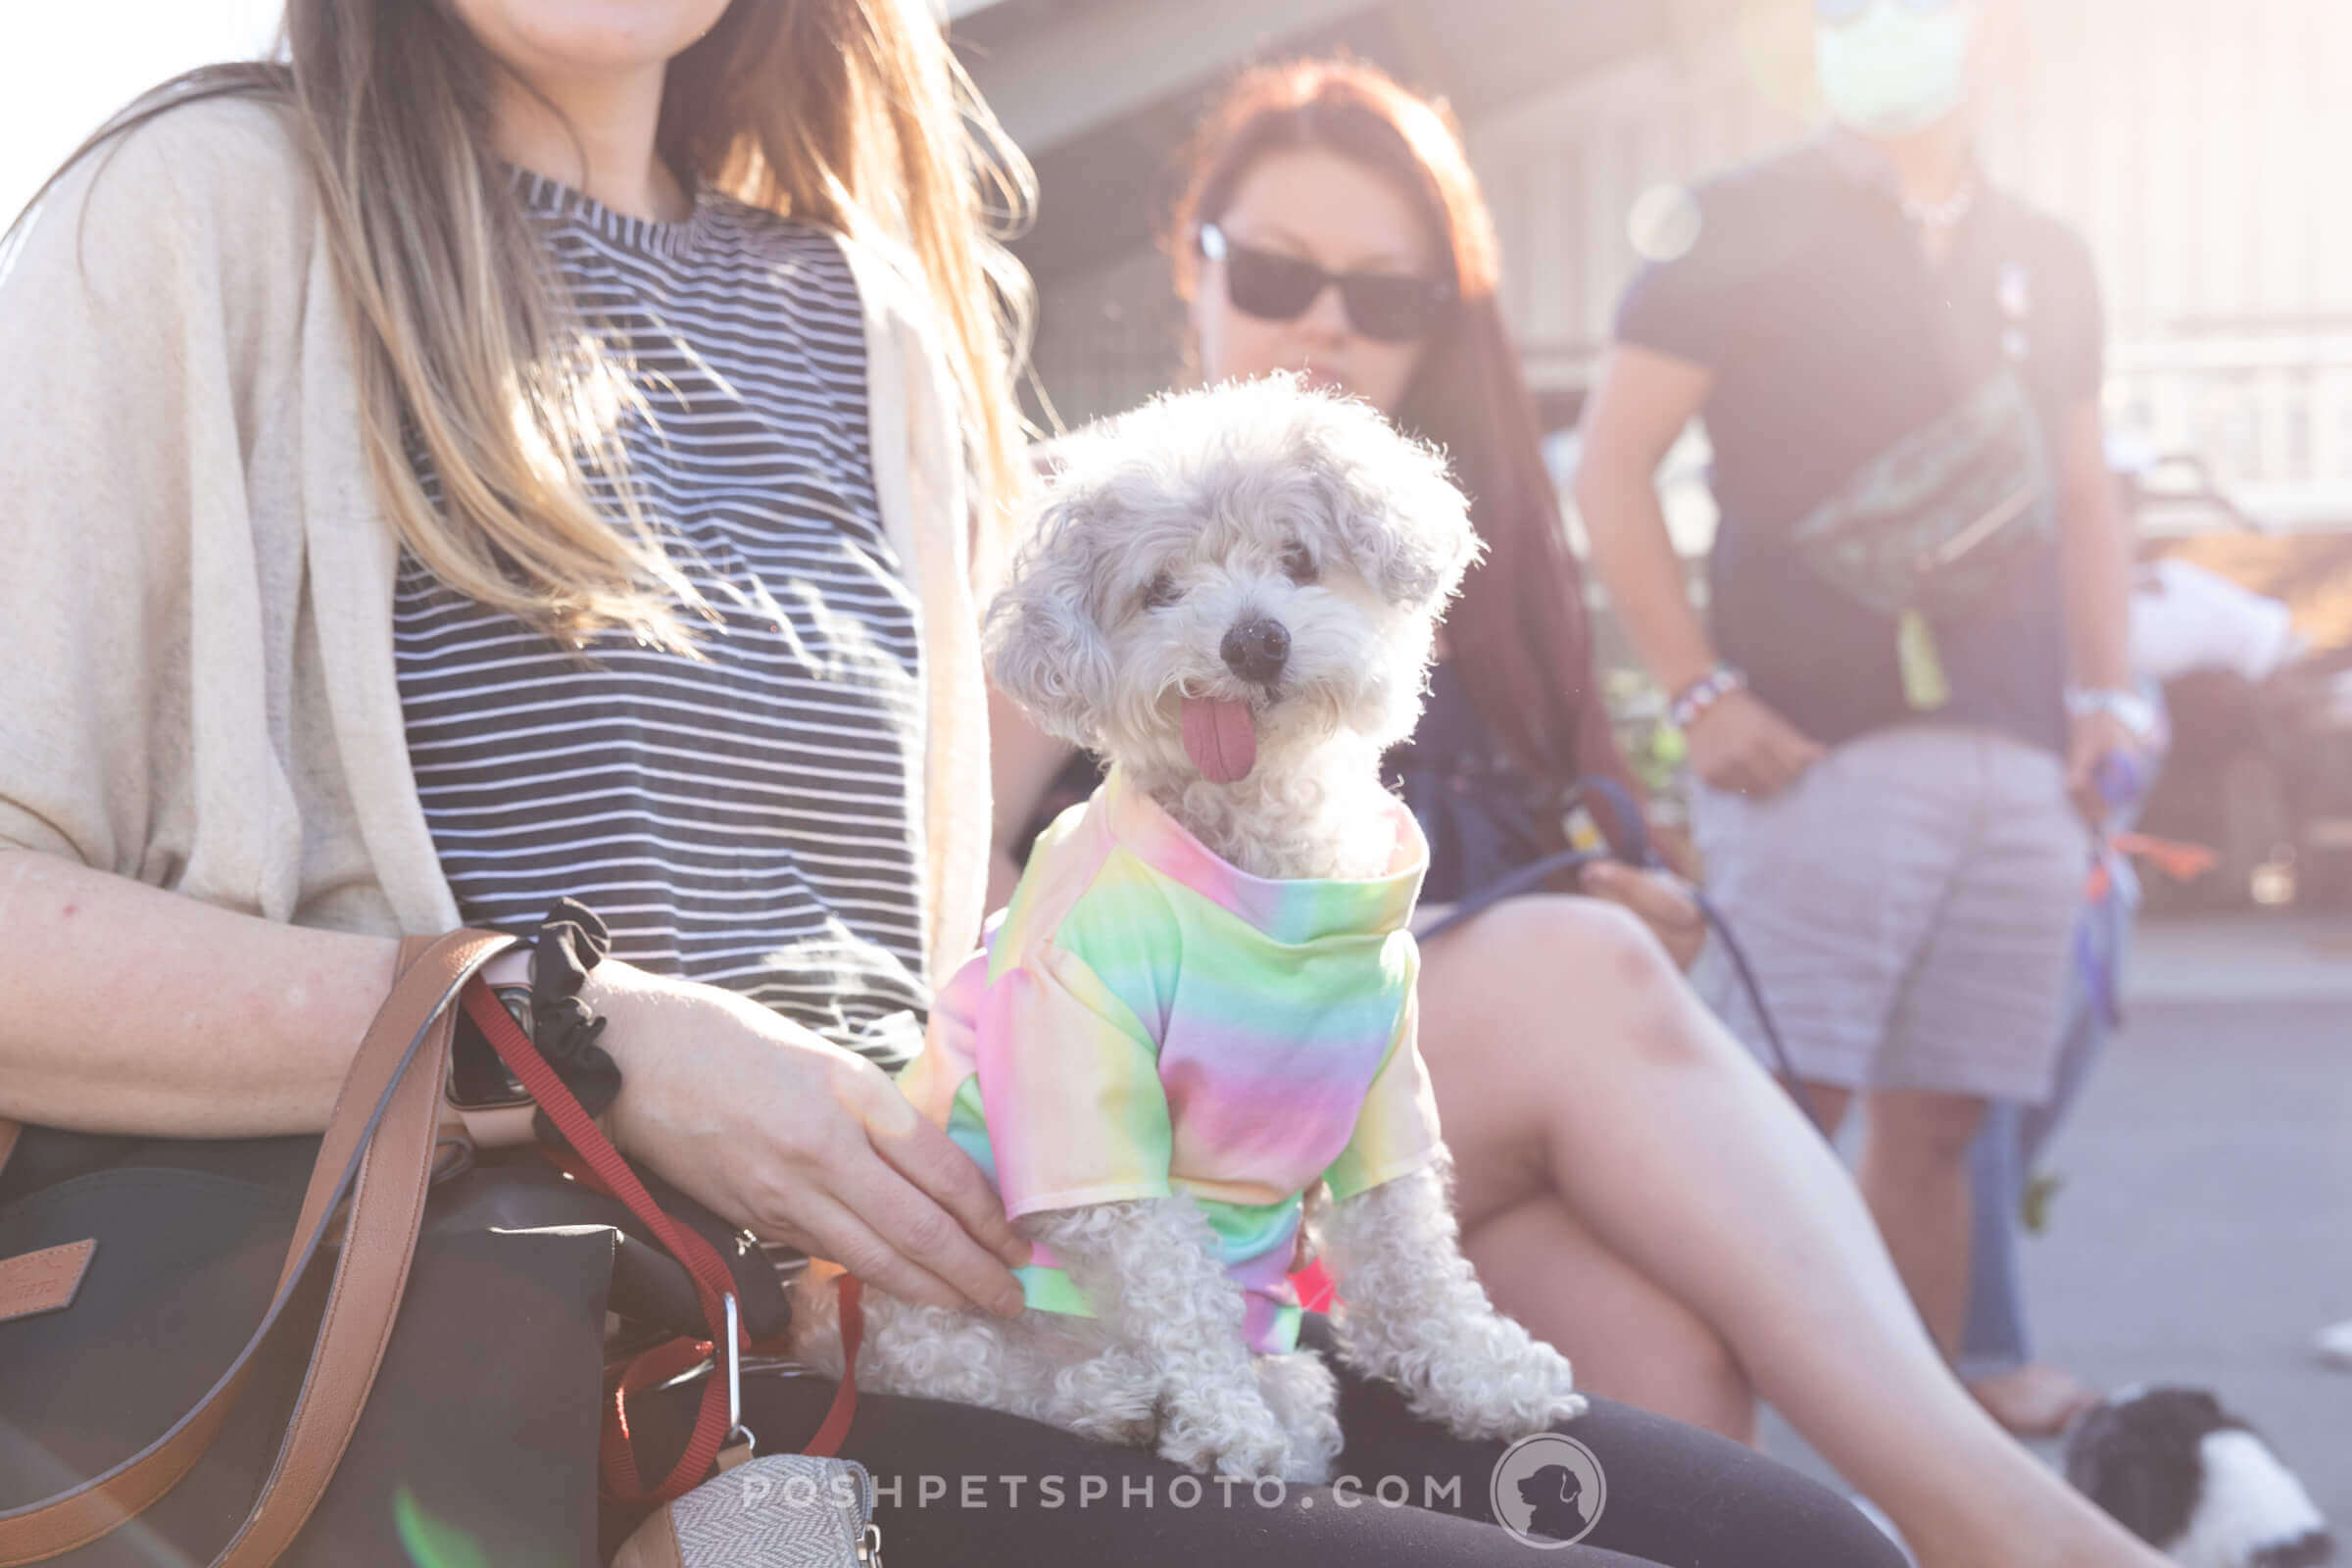 dog in tie dye shirt